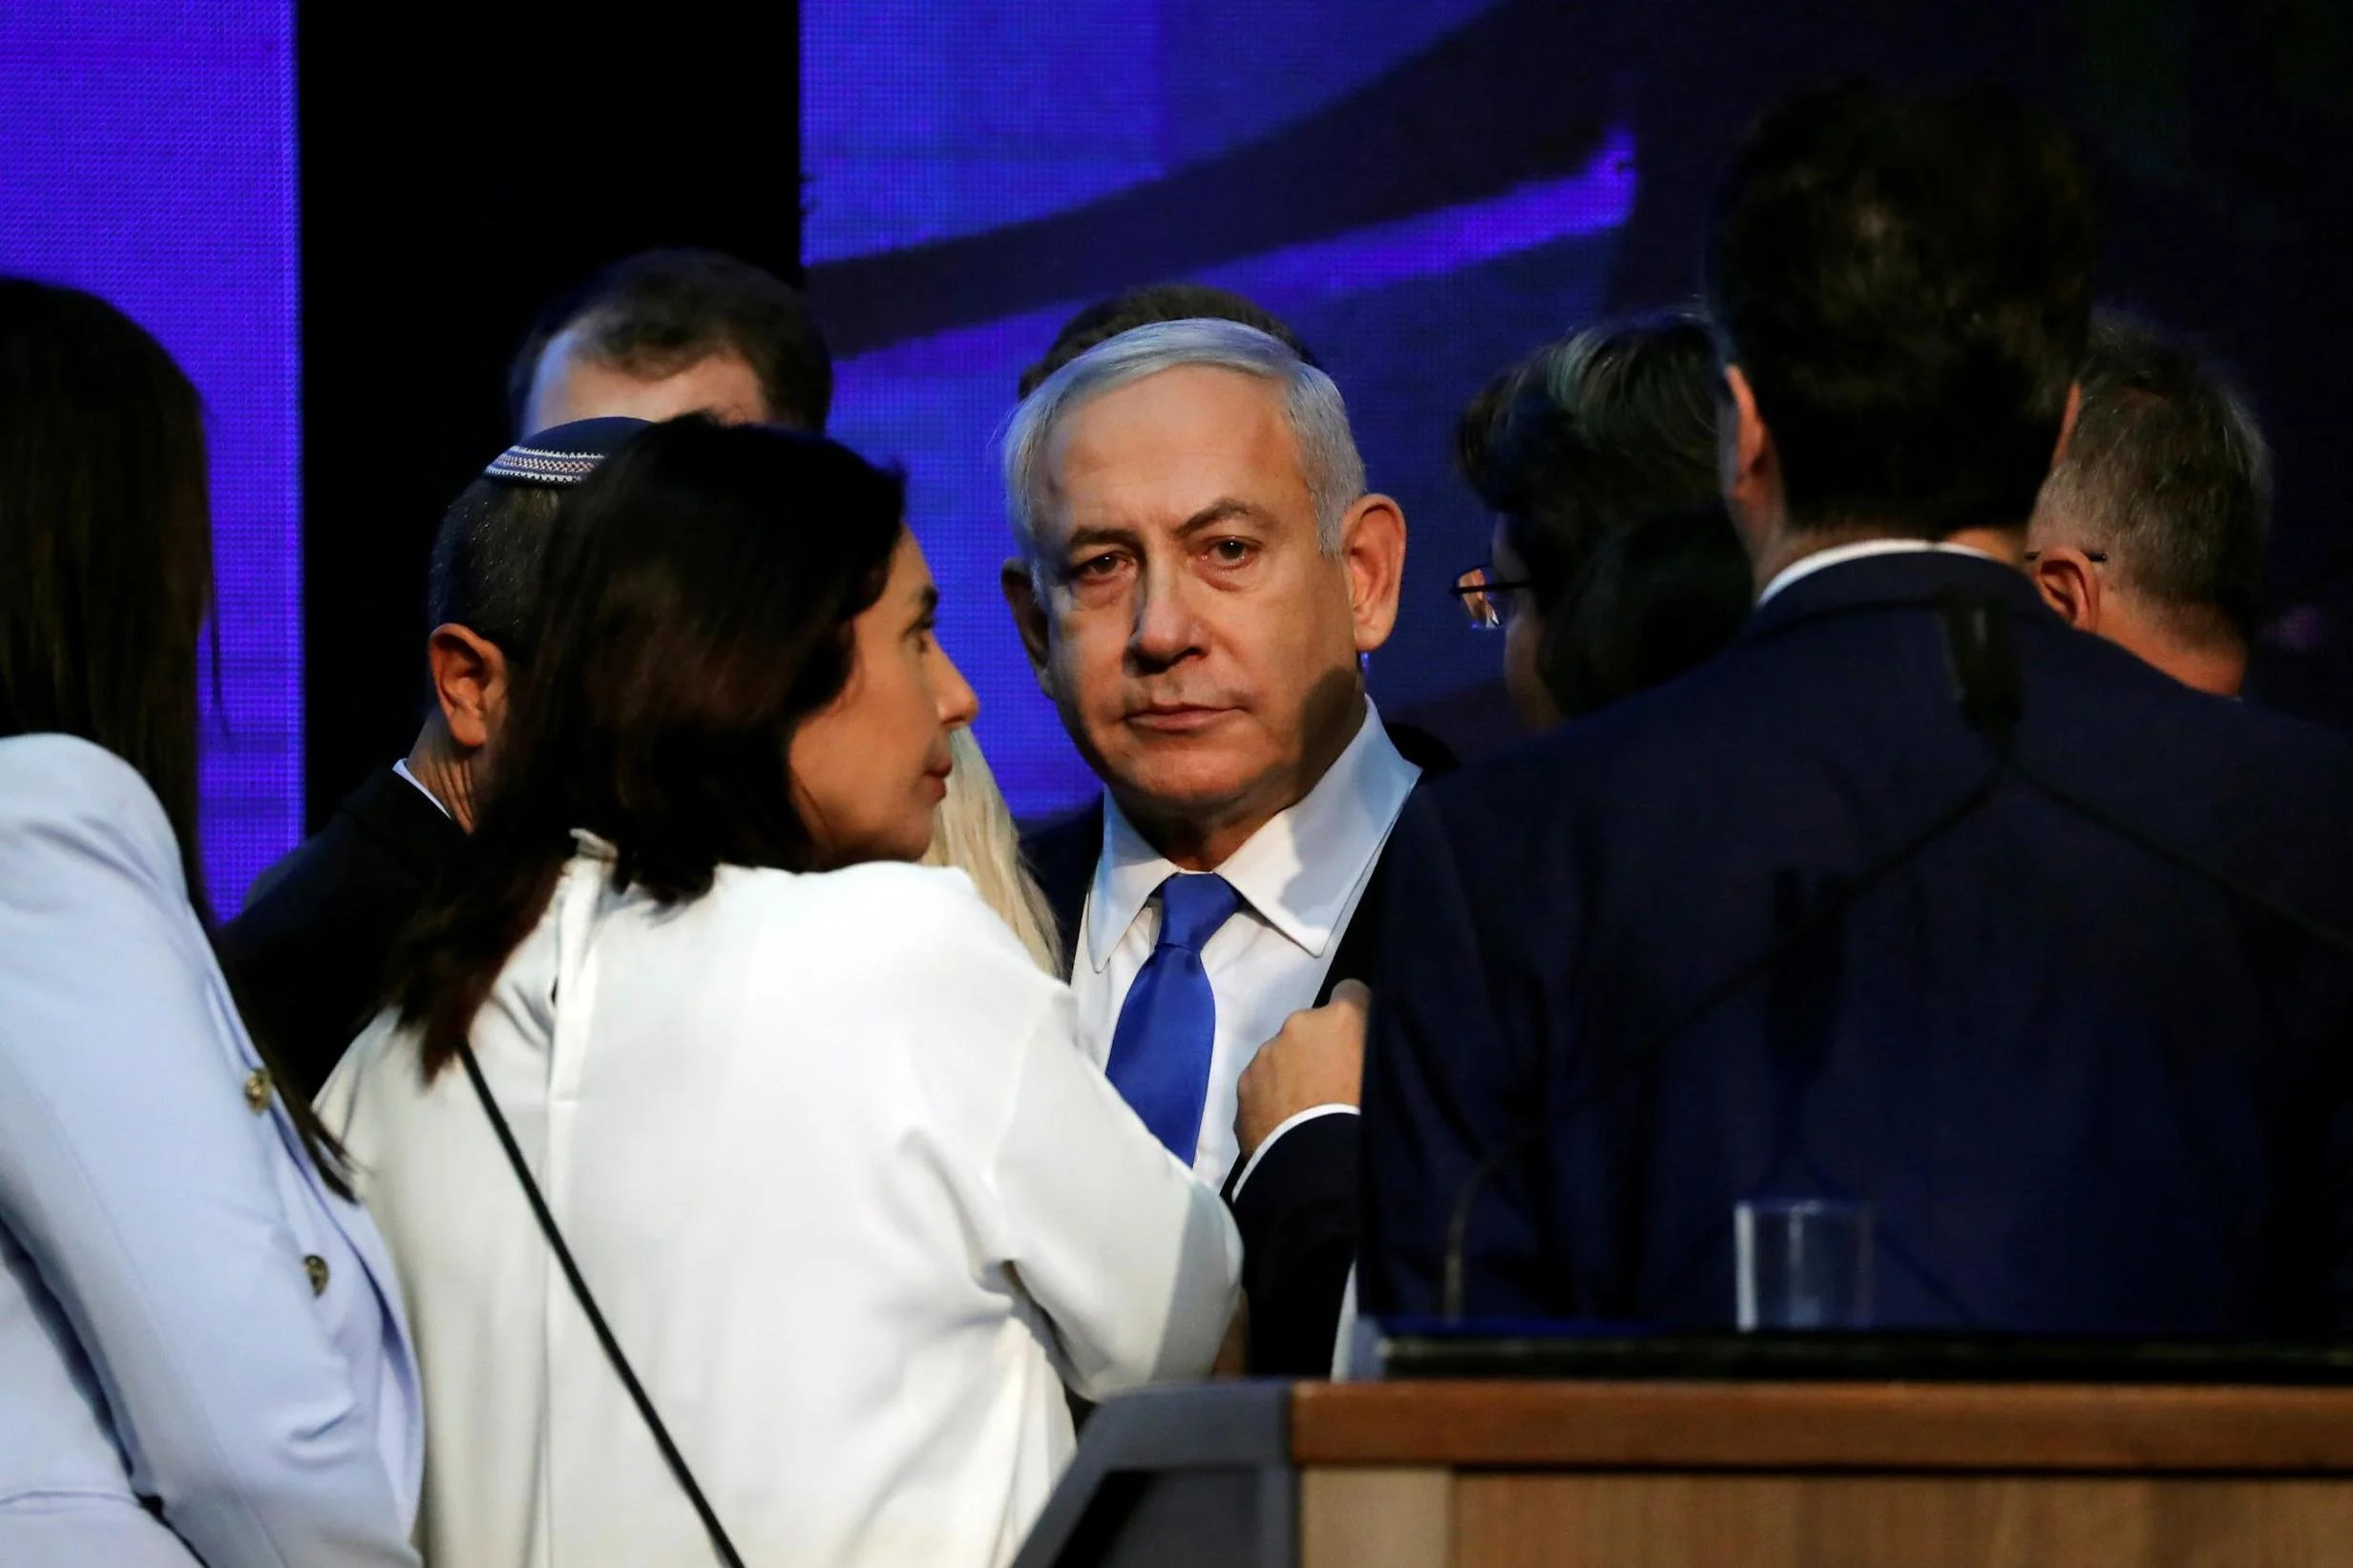 The Israeli prime minister spoke to supporters at his Likud party headquarters after the announcement of exit polls in Tel Aviv